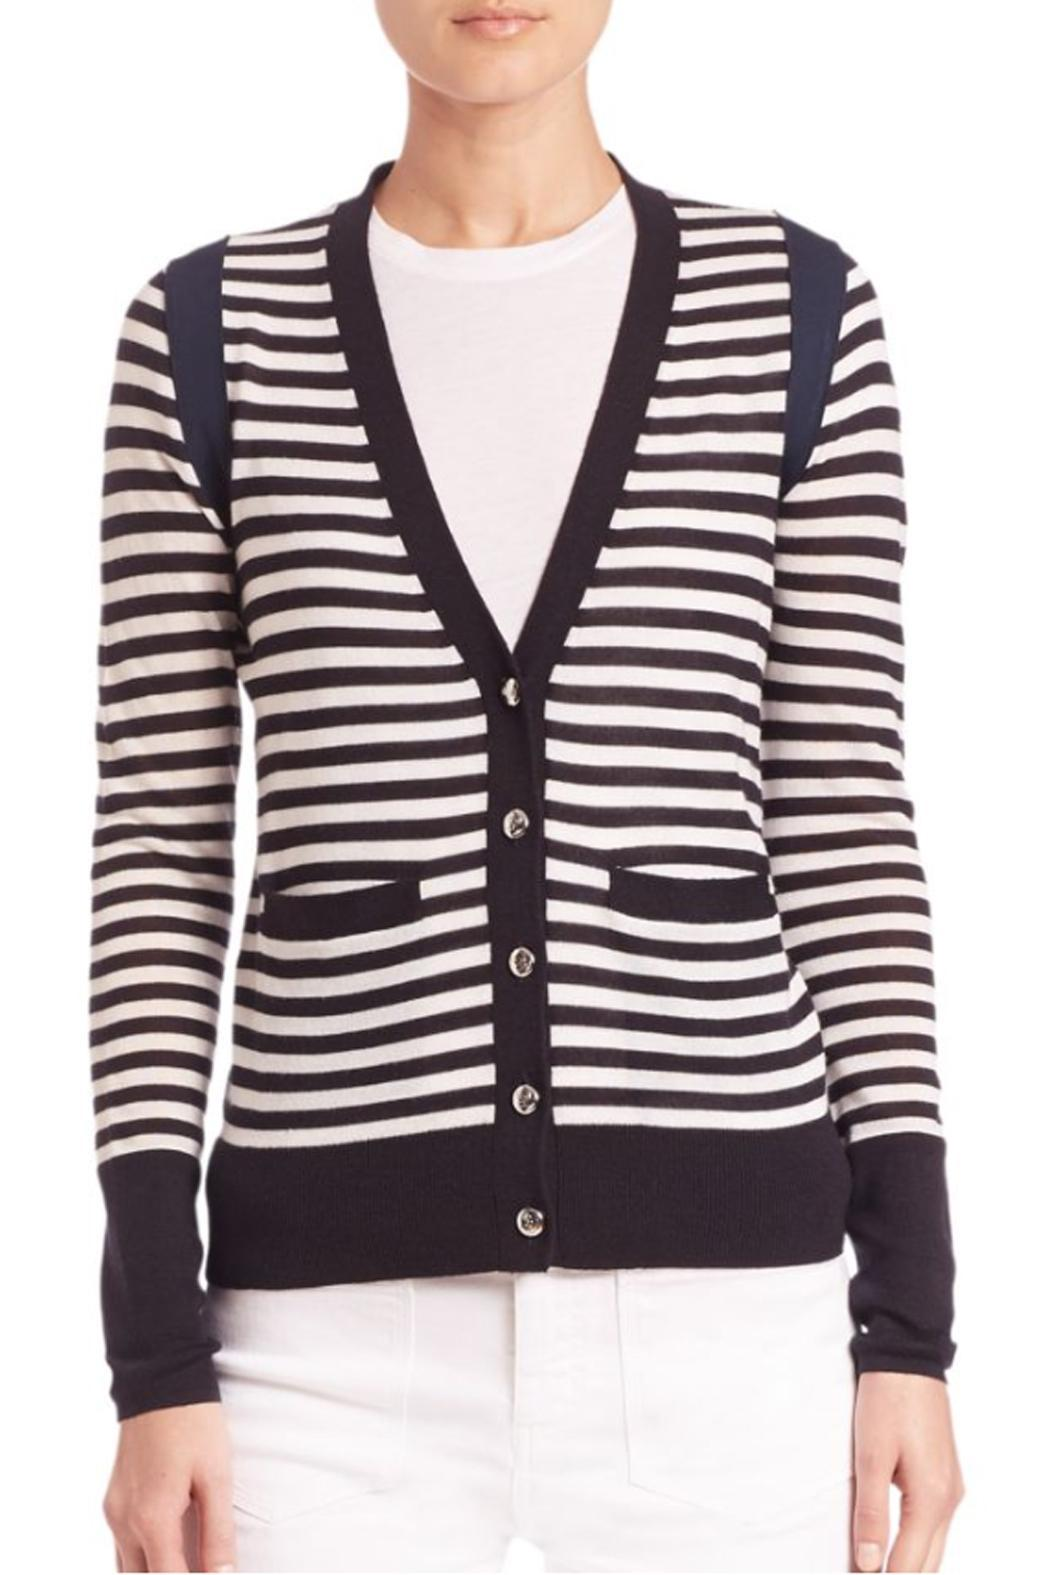 Sonia by Sonia Rykiel Striped Navy Cardigan - Front Full Image